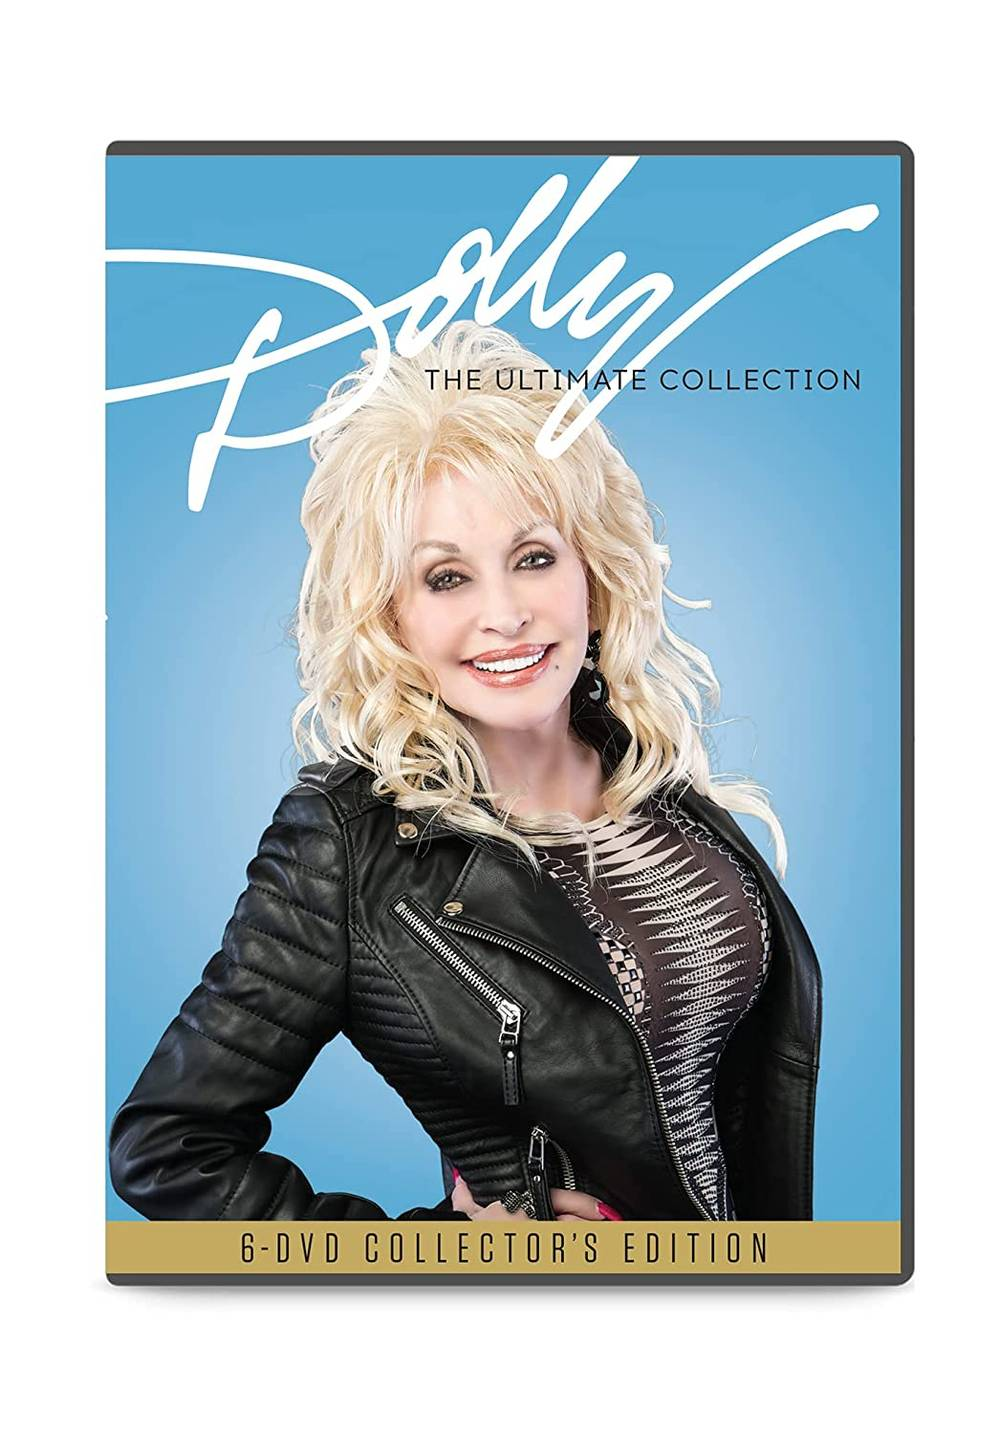 Dolly Parton - Dolly: The Ultimate Collection [6 DVD set]